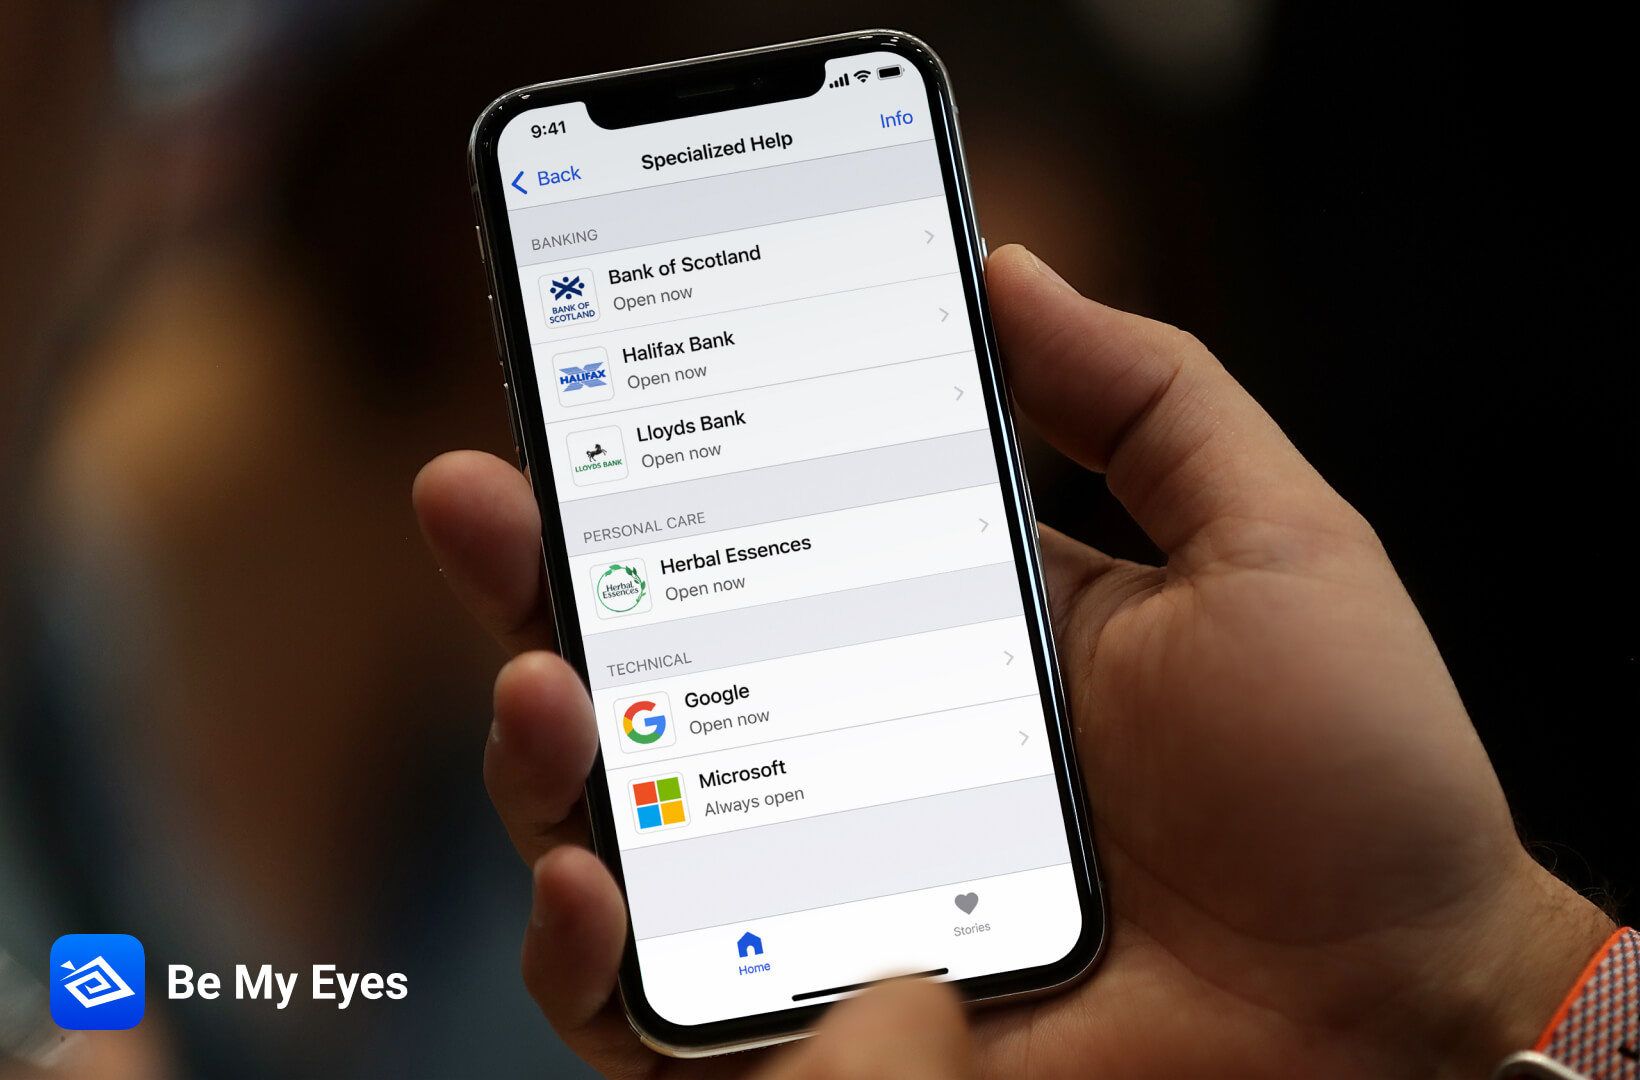 A phone screen displays a list of companies providing Be My Eyes support, including Google, Herbal Essences, Lloyds Banking Group and Microsoft.